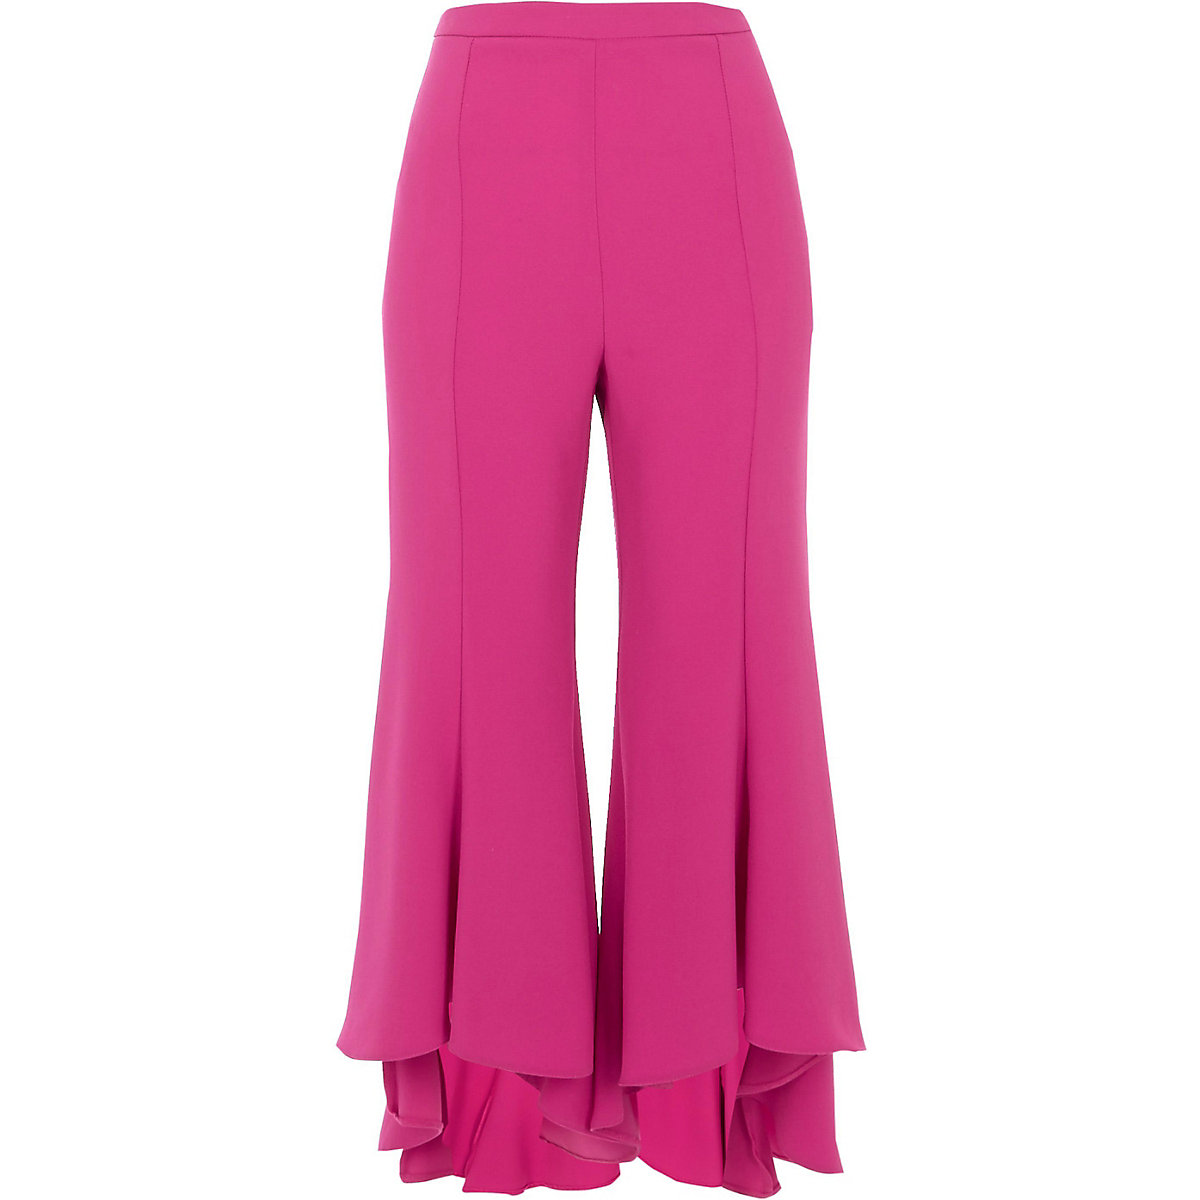 Pink cropped flared trousers